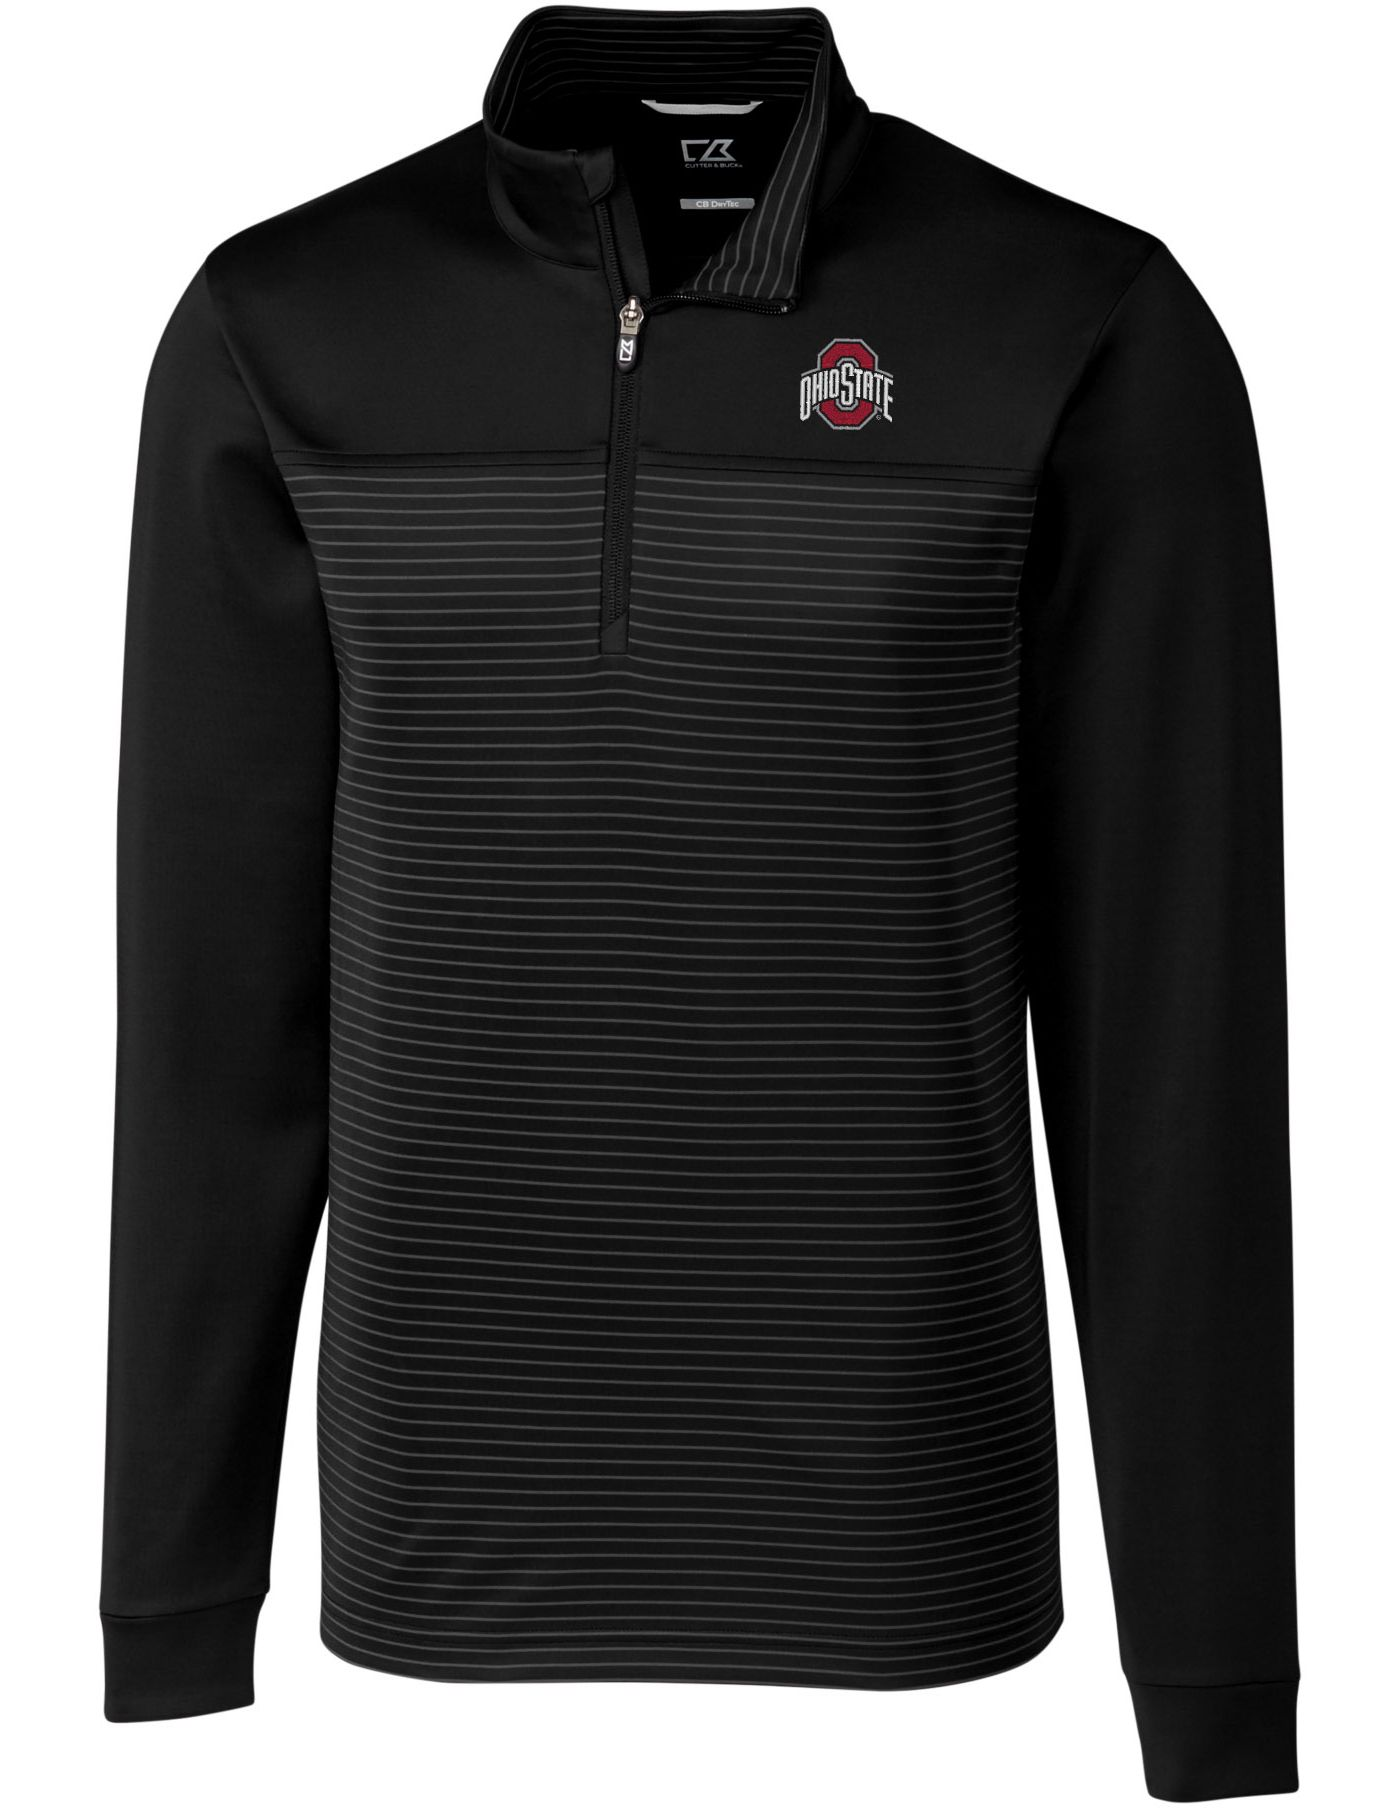 Cutter & Buck Men's Ohio State Buckeyes Traverse Stripe Half-Zip Black Shirt